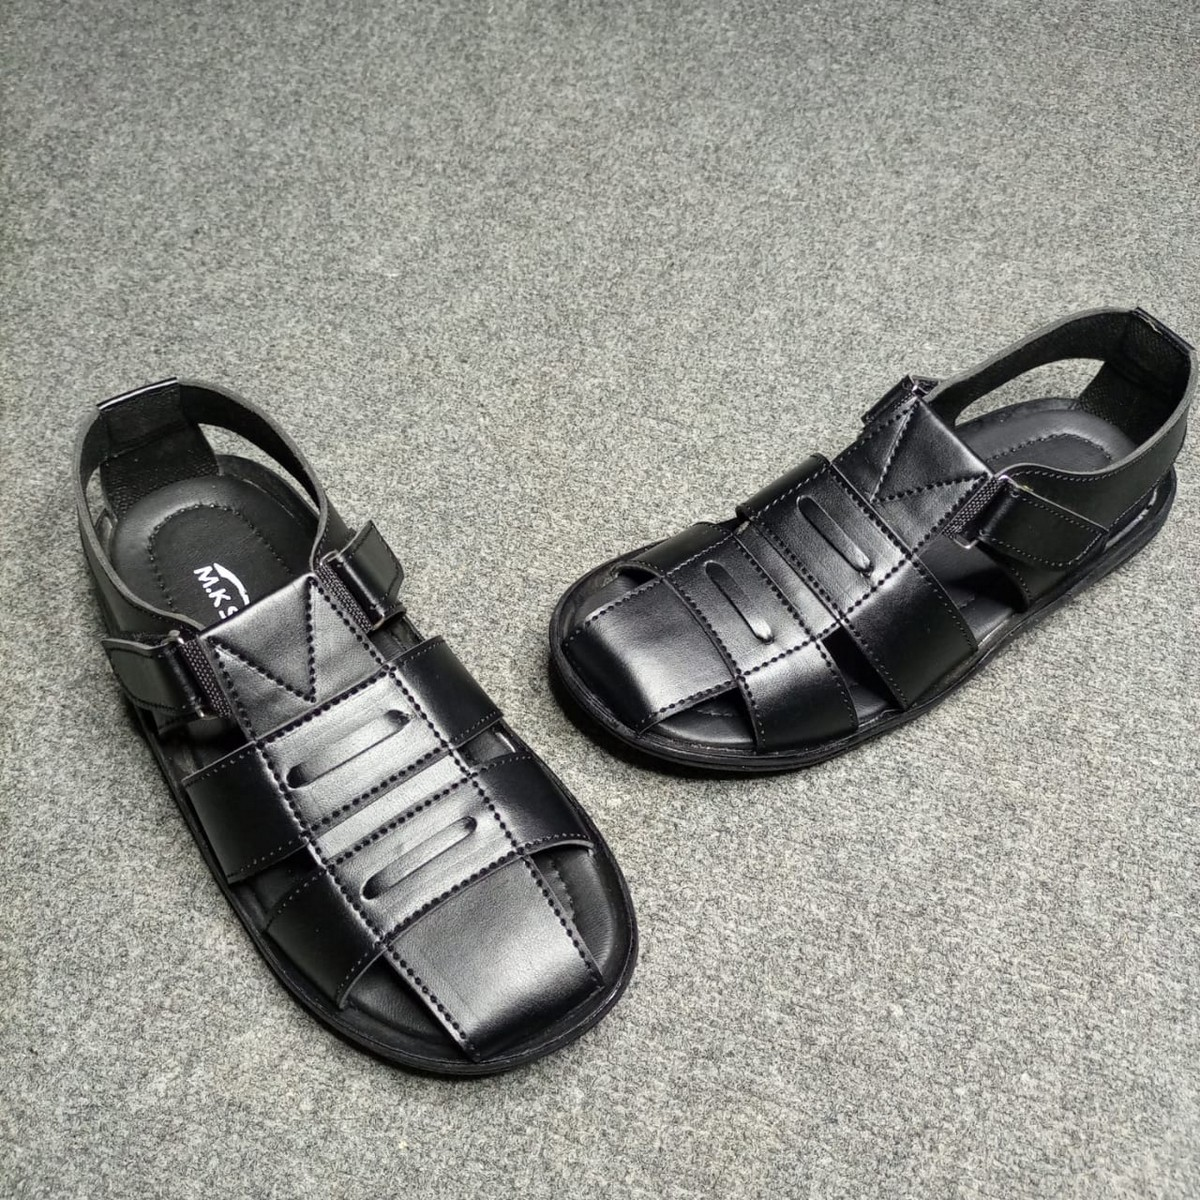 (MK) Black & Brown - Synthetic Material Sandals for Men